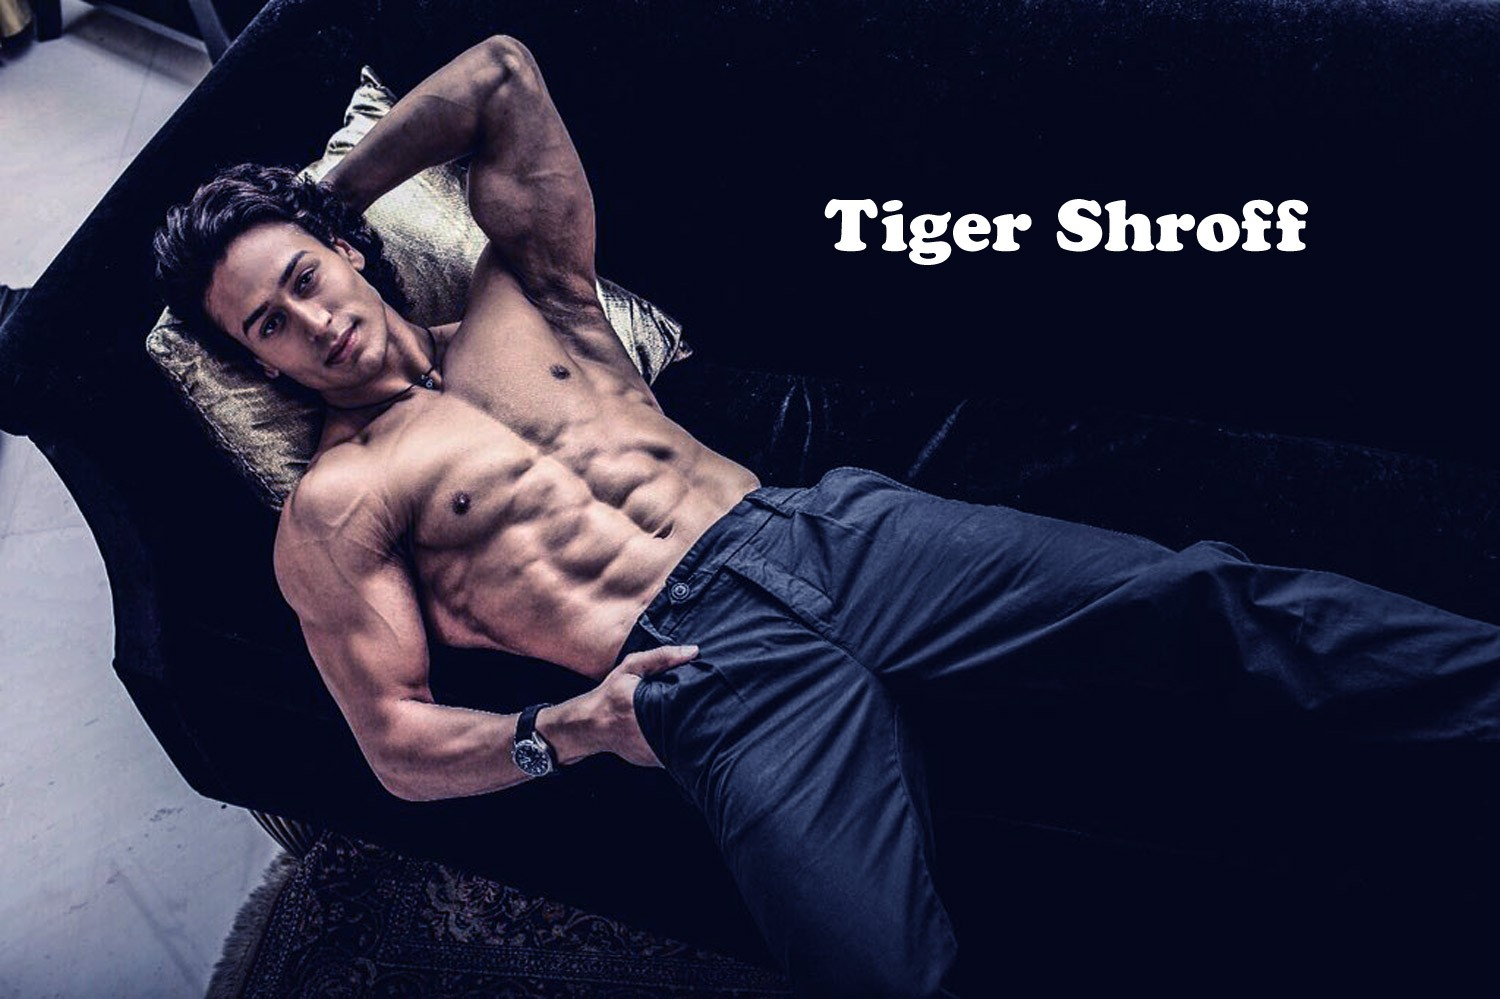 Tiger Shroff Ki Photo